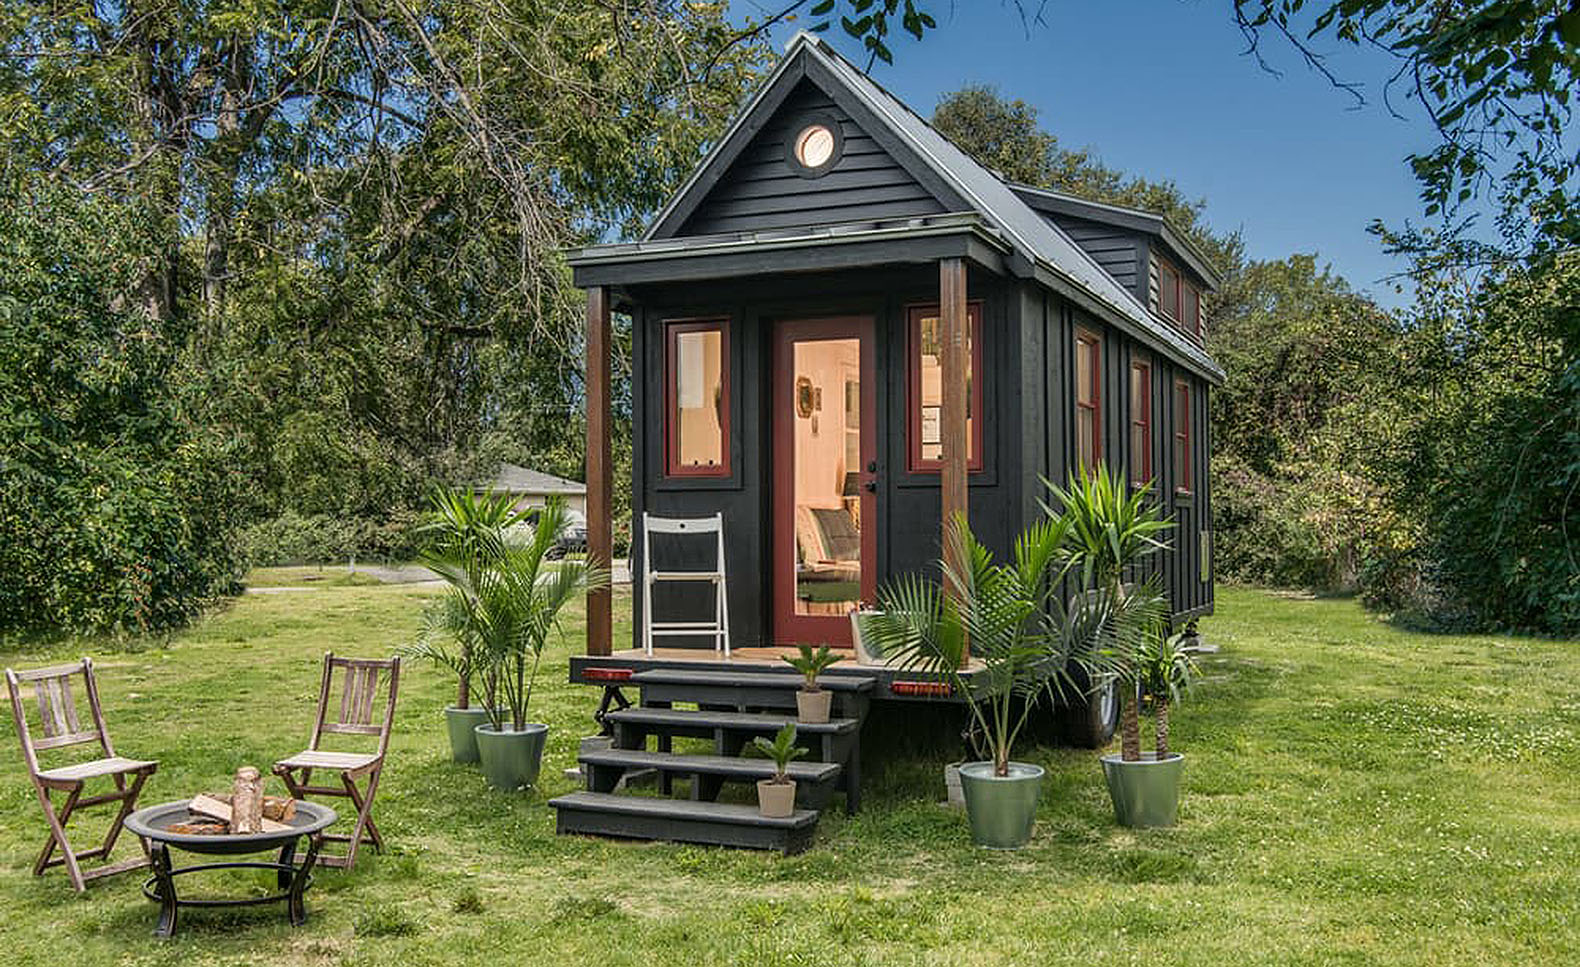 Enjoyable Tiny Homes Ltd Bringing Tiny Homes To The World Largest Home Design Picture Inspirations Pitcheantrous